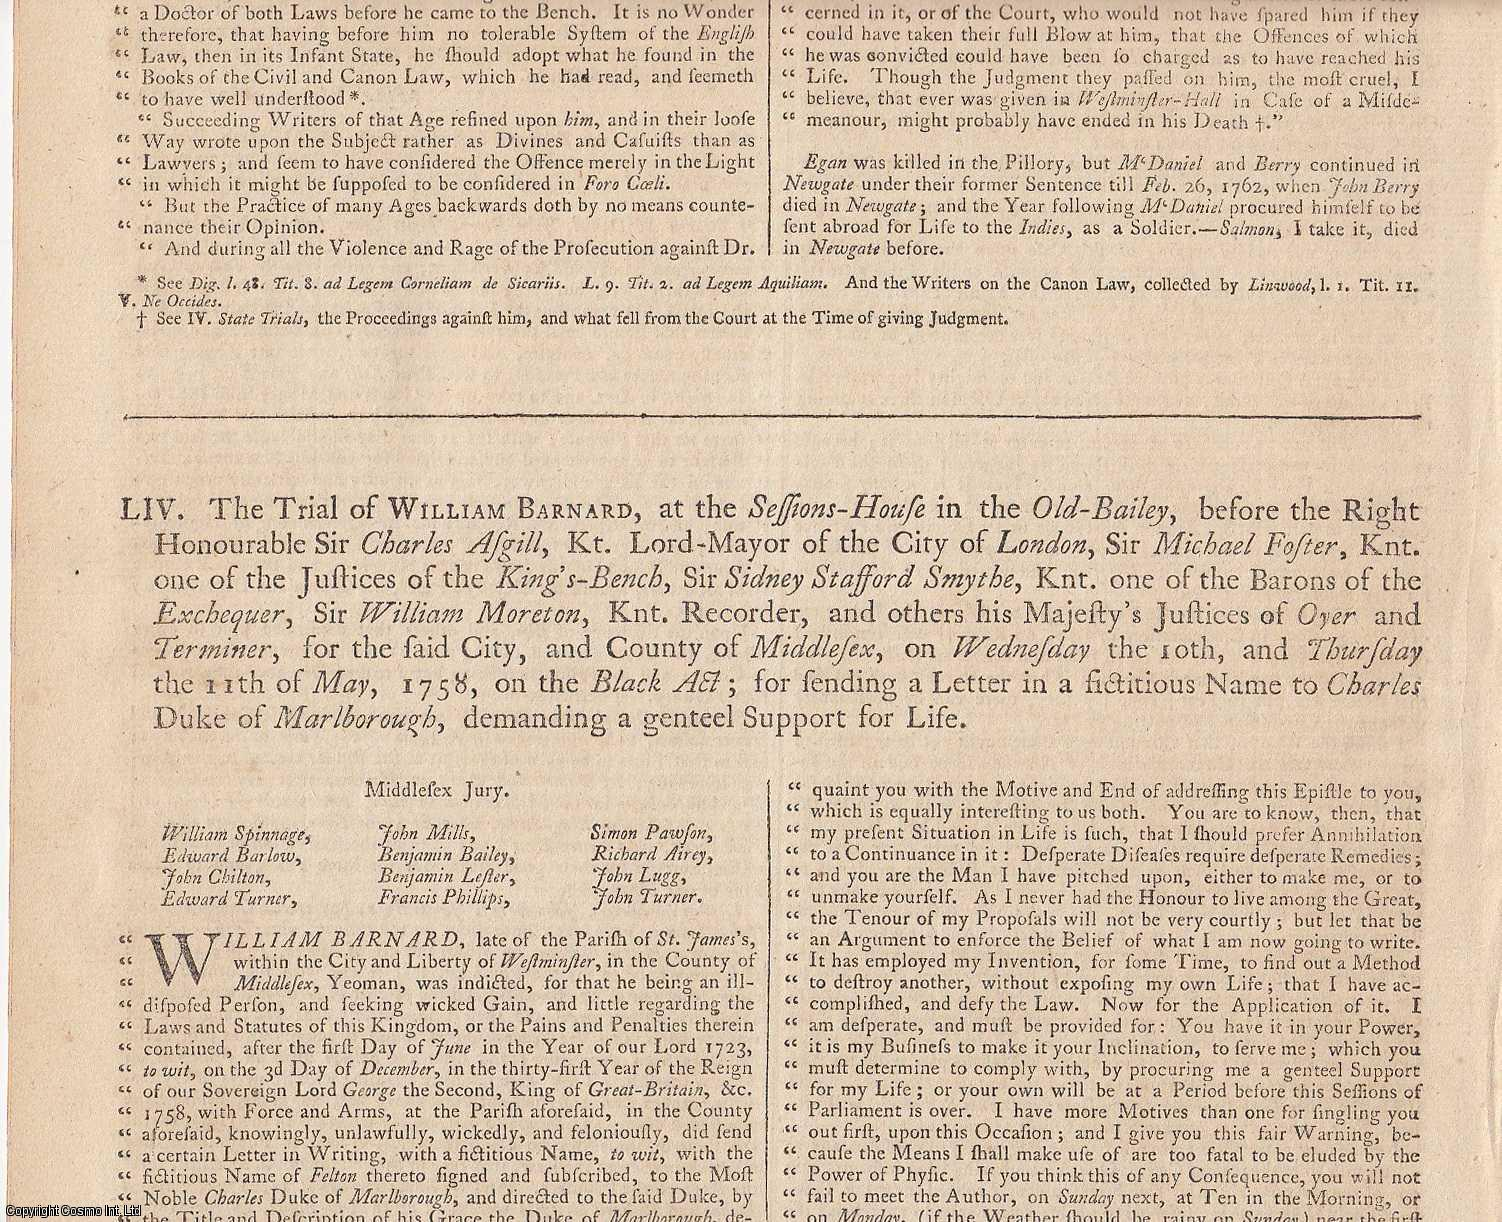 BLACK ACT TRIAL.  The Trial of William Barnard, at the Sessions House in the Old Bailey on Wednesday the 10th, and Thursday the 11th of May, 1758 on the Black Act; for sending a Letter in the fictitious Name to Charles, Duke of Marlborough, demanding a genteel Support for Life., [Trial].